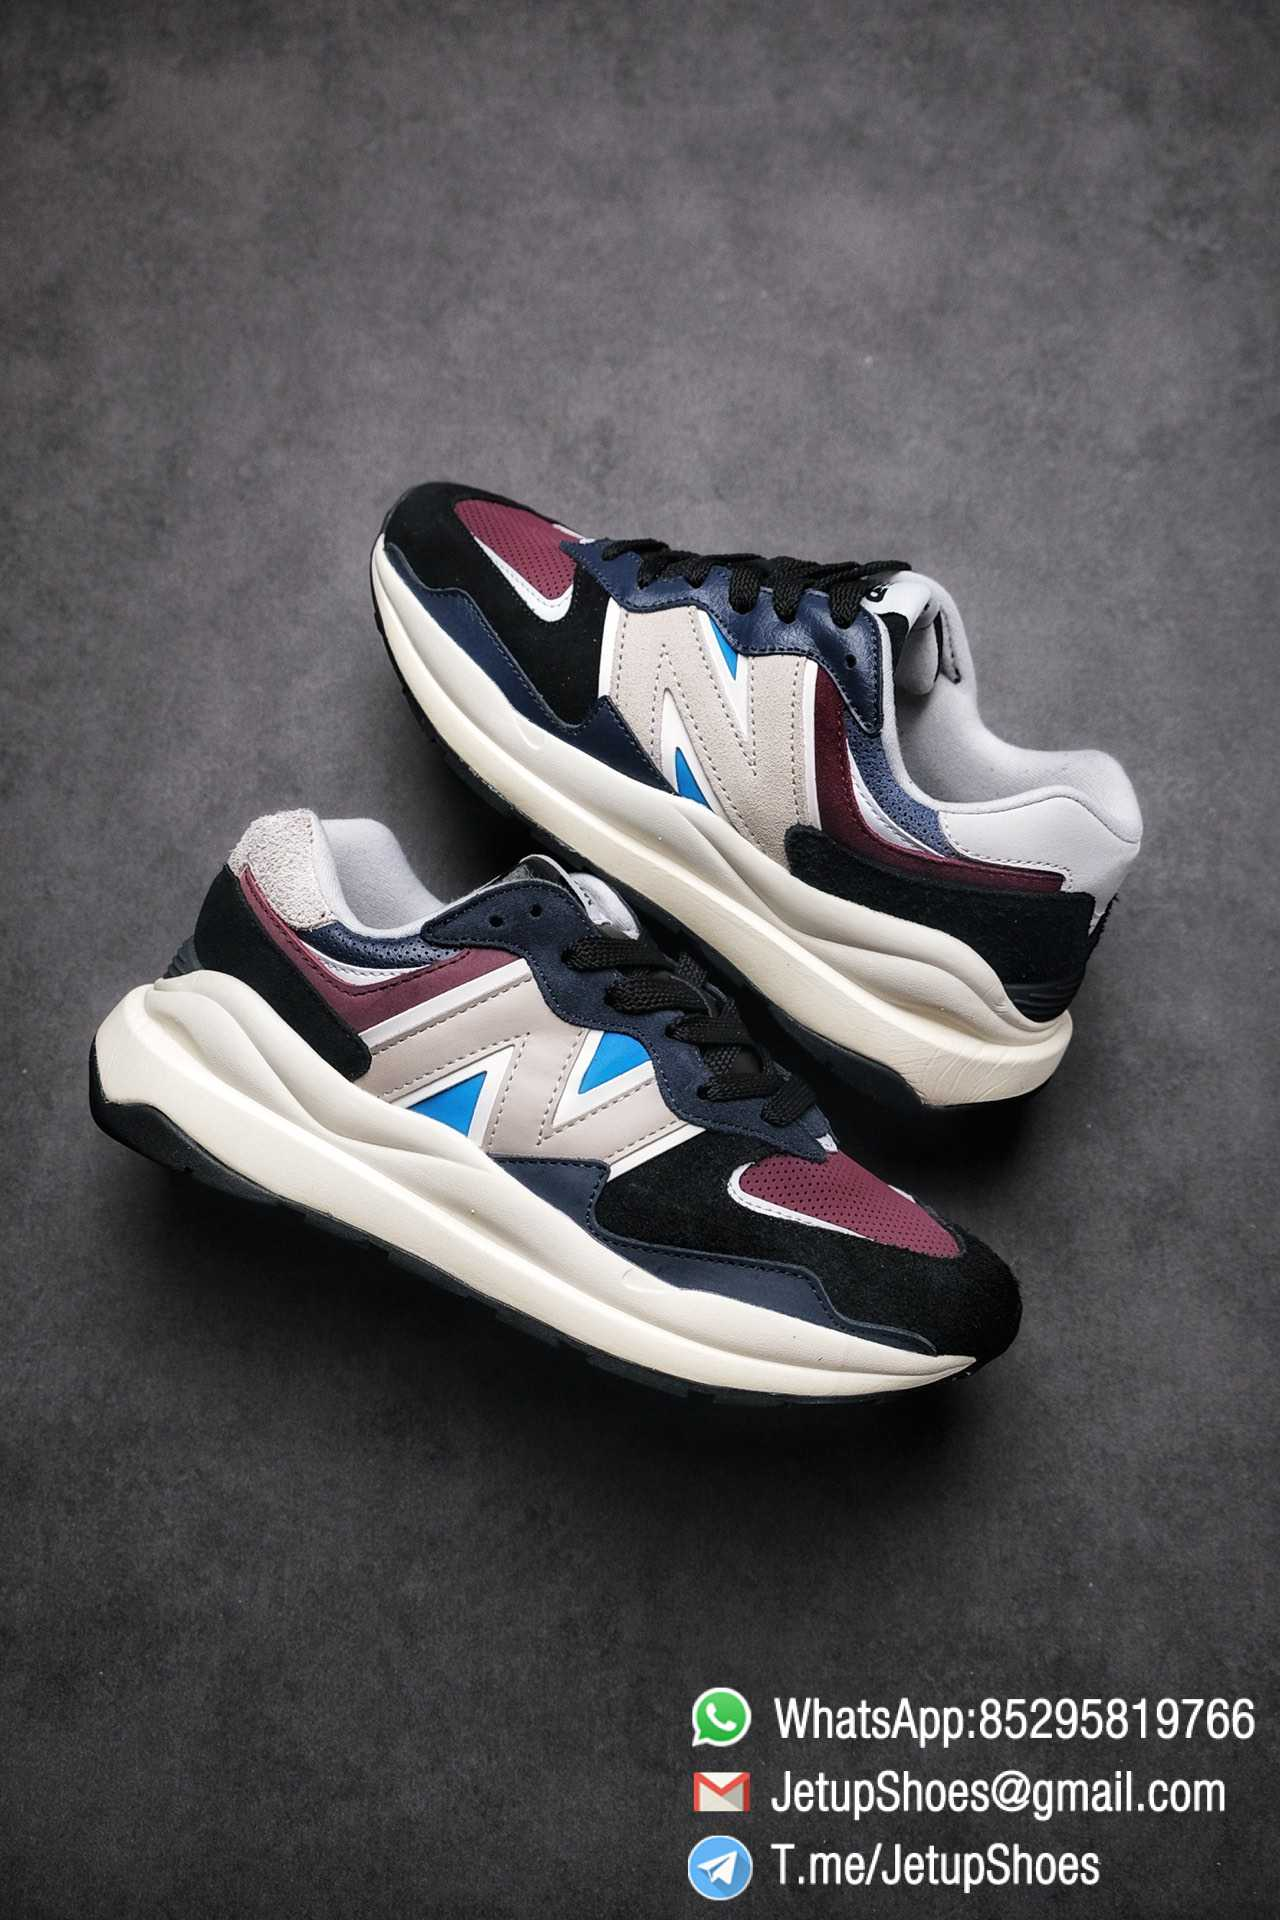 Best Replica New Balance 57 40 Navy Burgundy SKU M5740TB Navy And Burgundy Panels Appear Top Quality 01